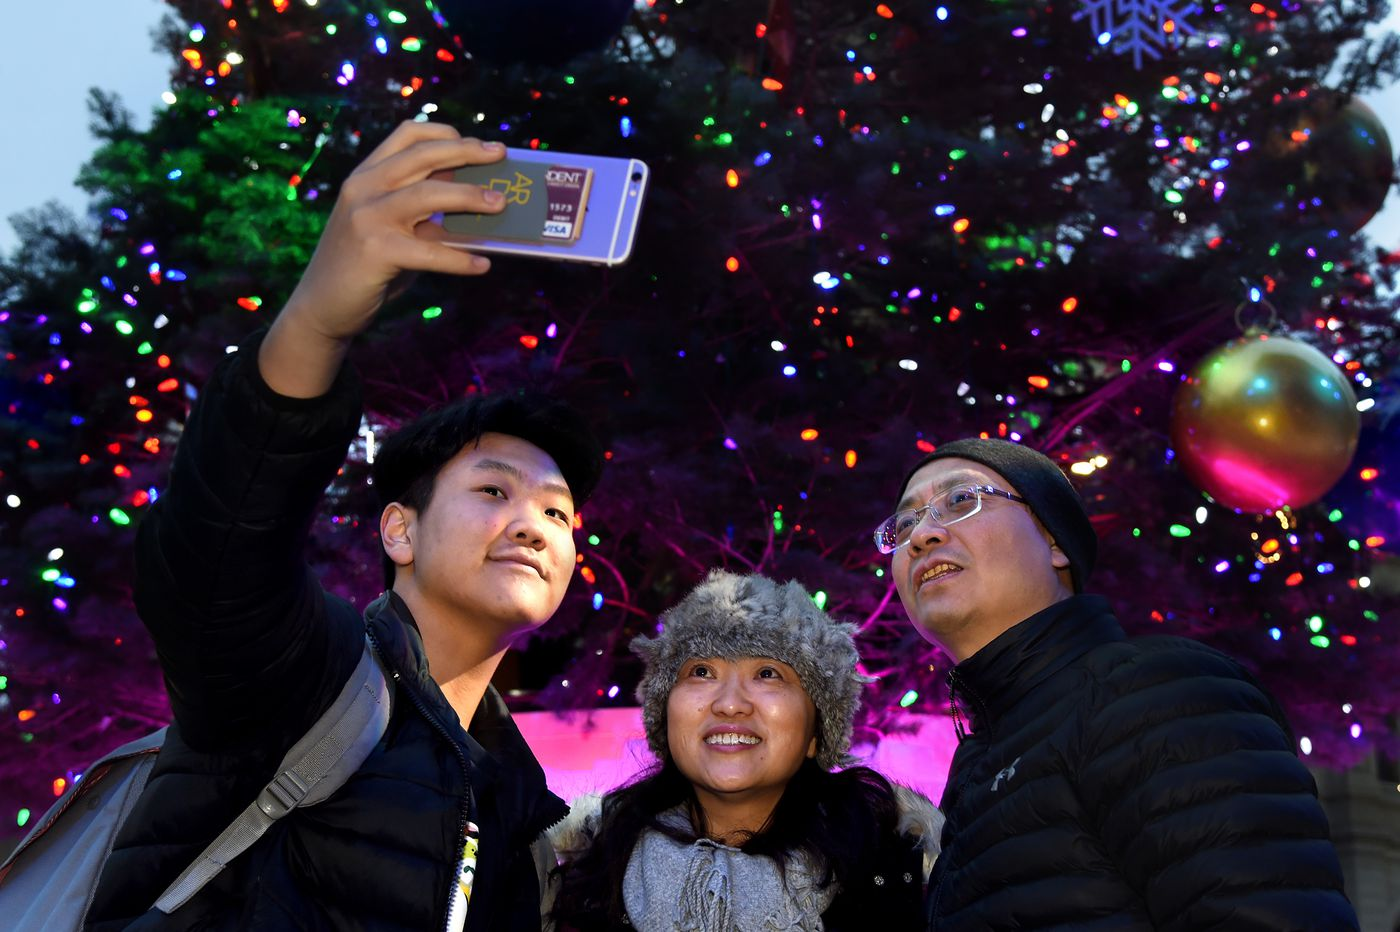 From China to Philly — with wonder, at Christmas